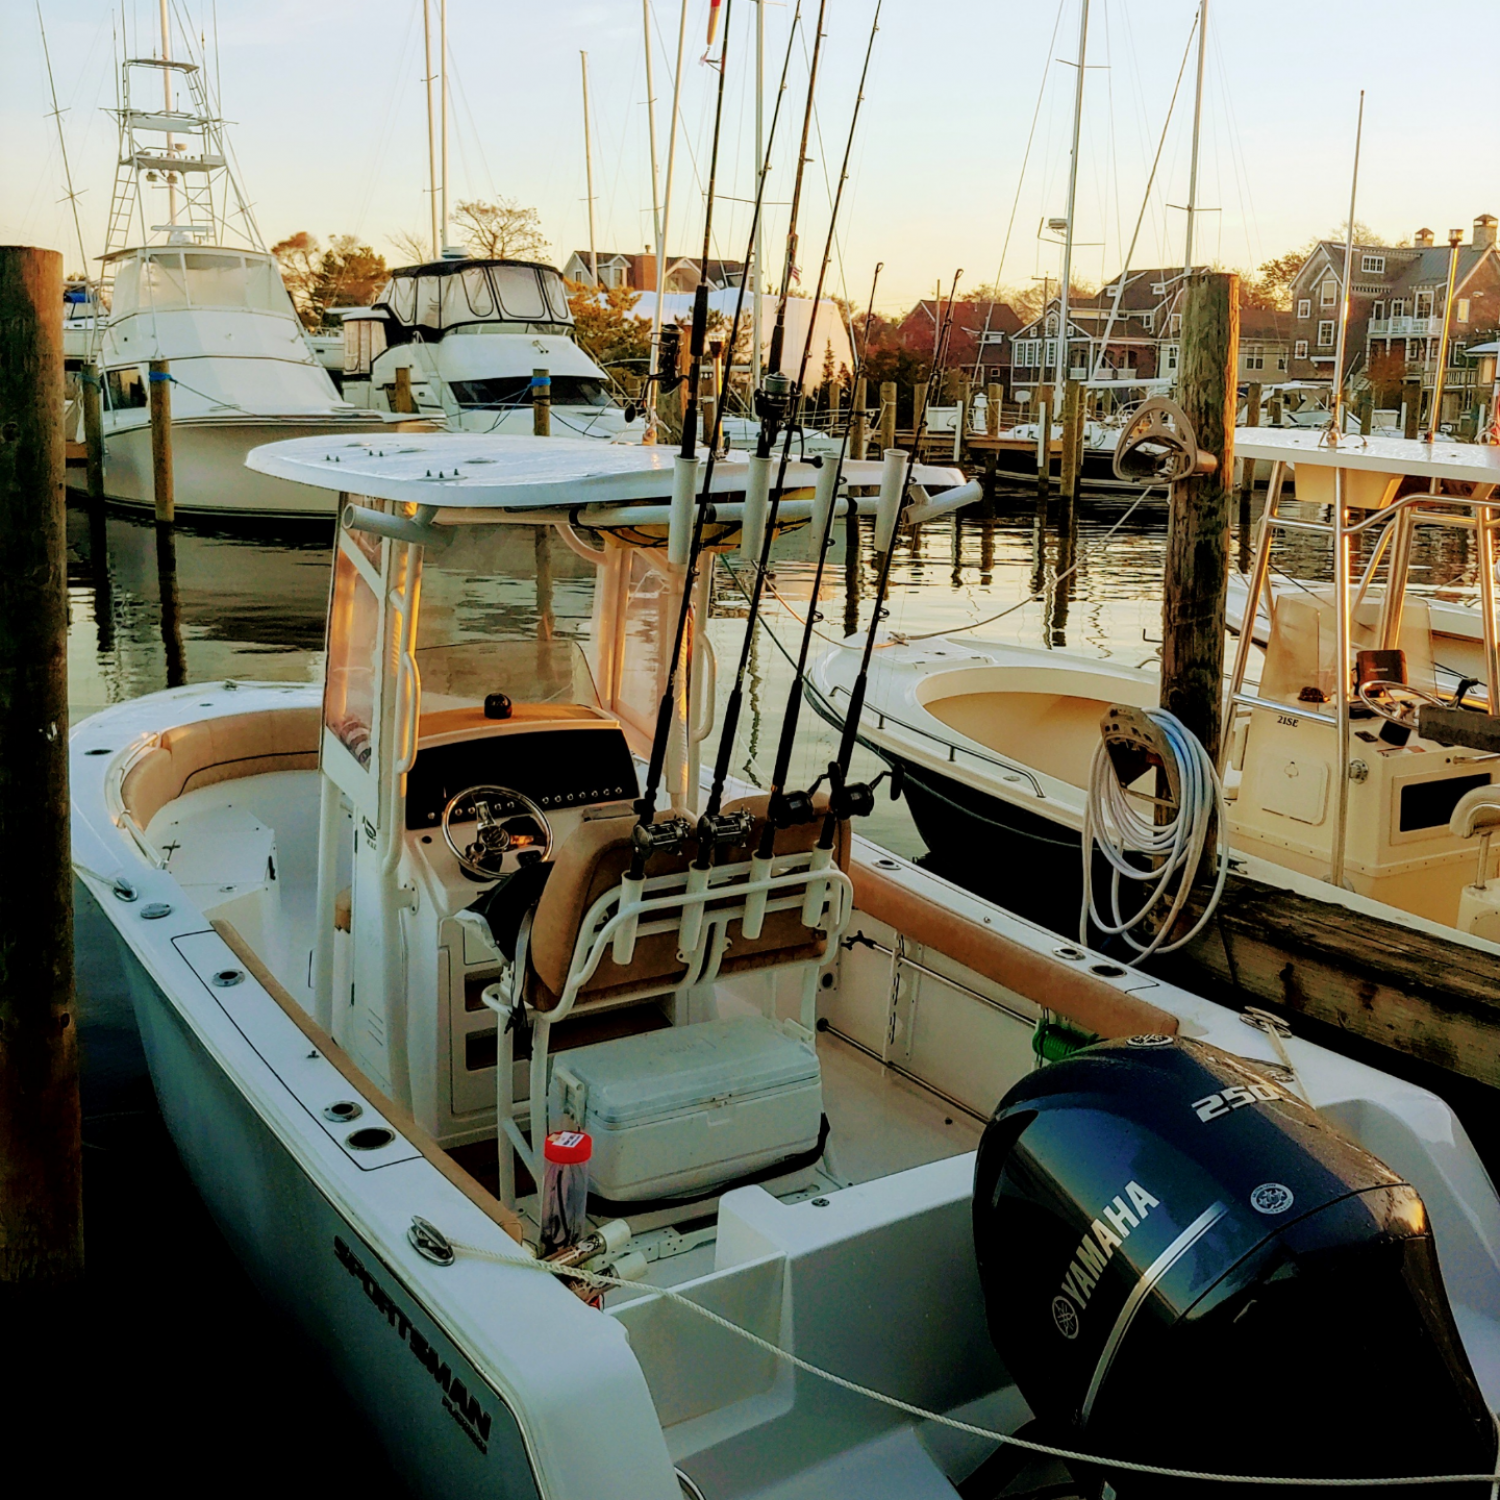 Title: Morning Assault - On board their Sportsman Open 232 Center Console - Location: Point Pleasant NJ. Participating in the Photo Contest #SportsmanDecember2020